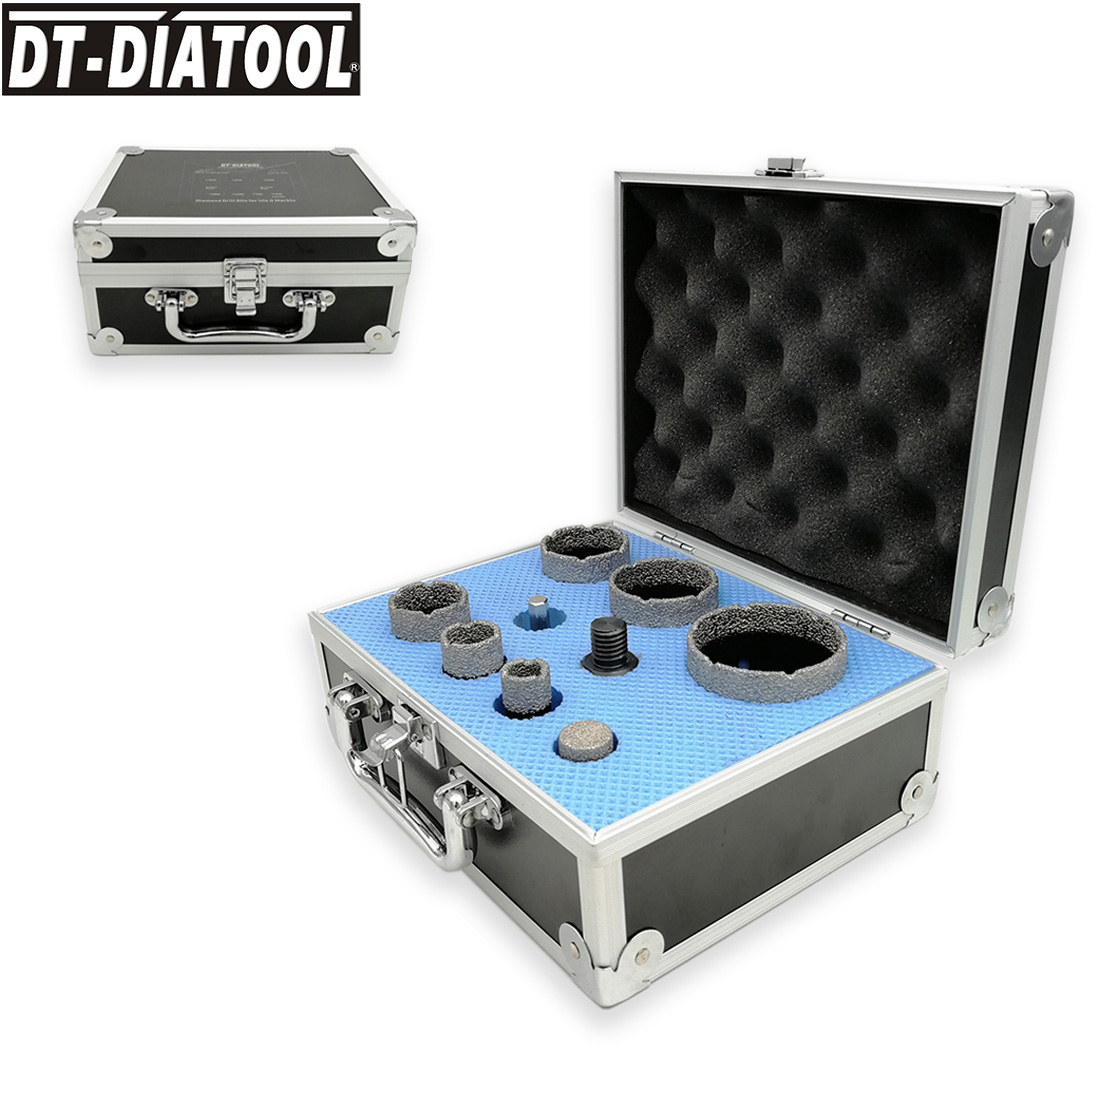 DT-DIATOOL 9pcs/kit Vacuum Brazed Diamond Drill Hole Saw Sets 5/8-11 Connection Drilling Core Bits Plus 20mm Finger Bits Adapter